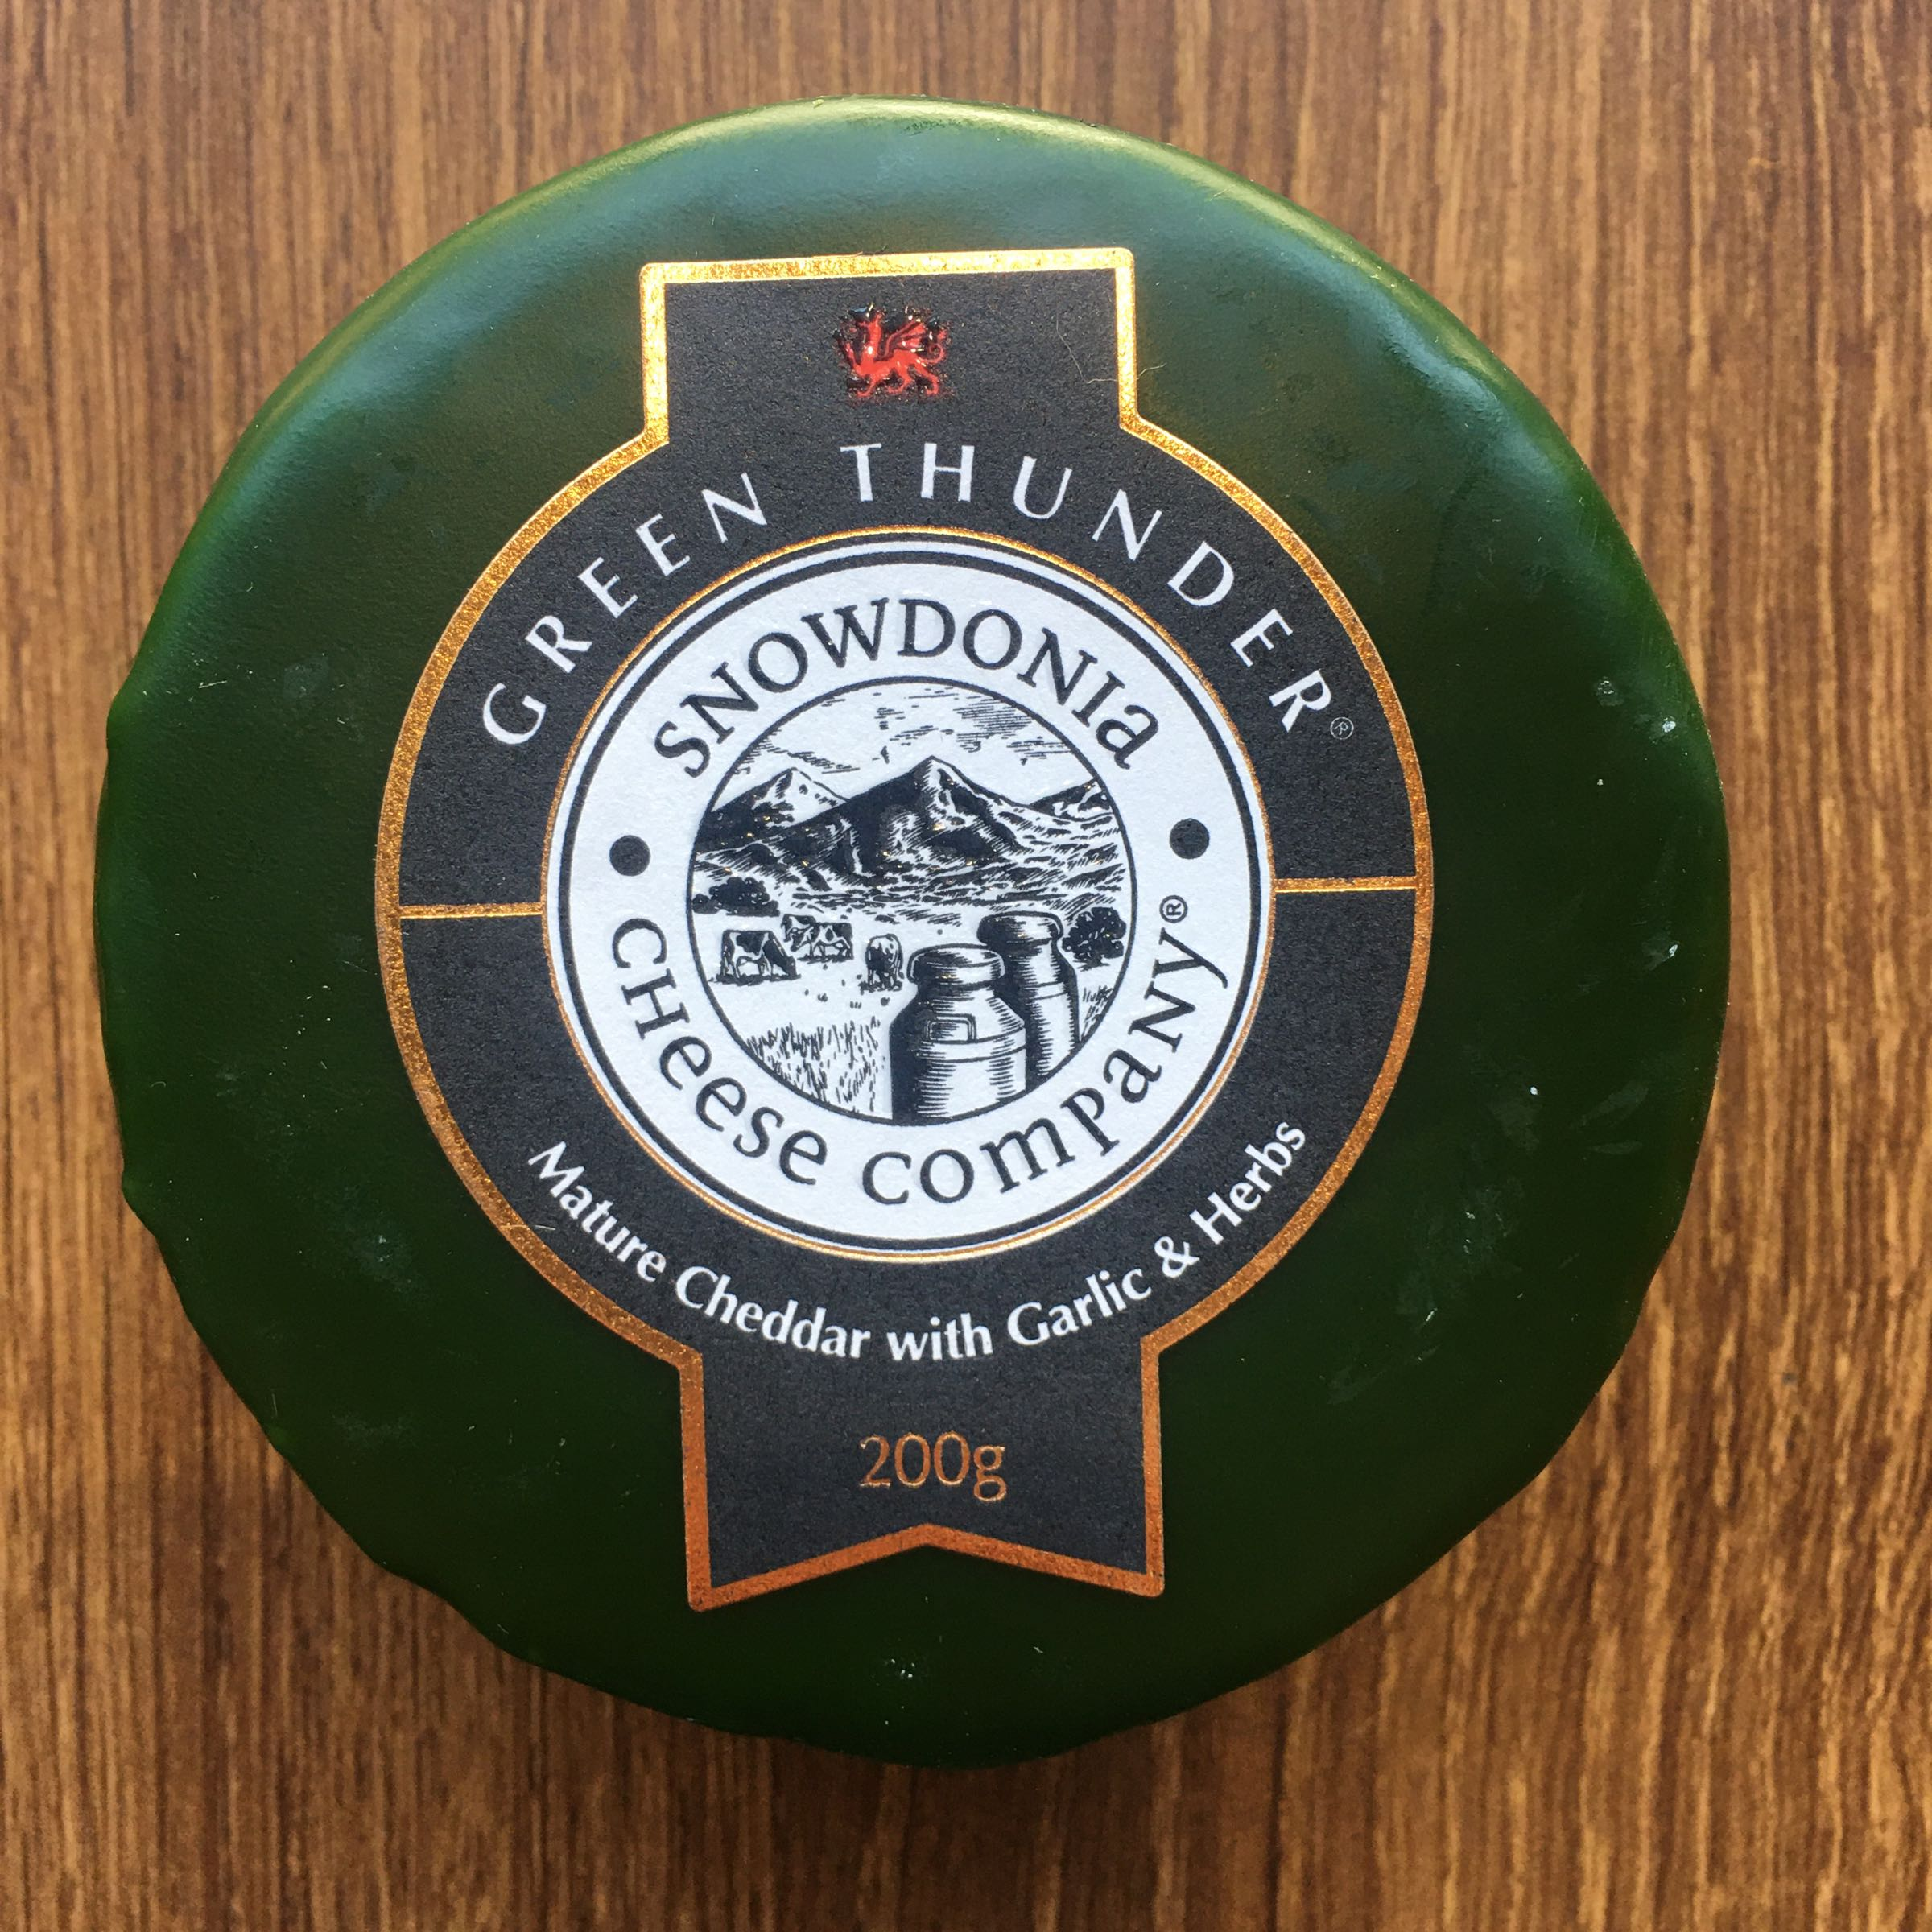 Green Thunder Snowdonia Waxed Cheese